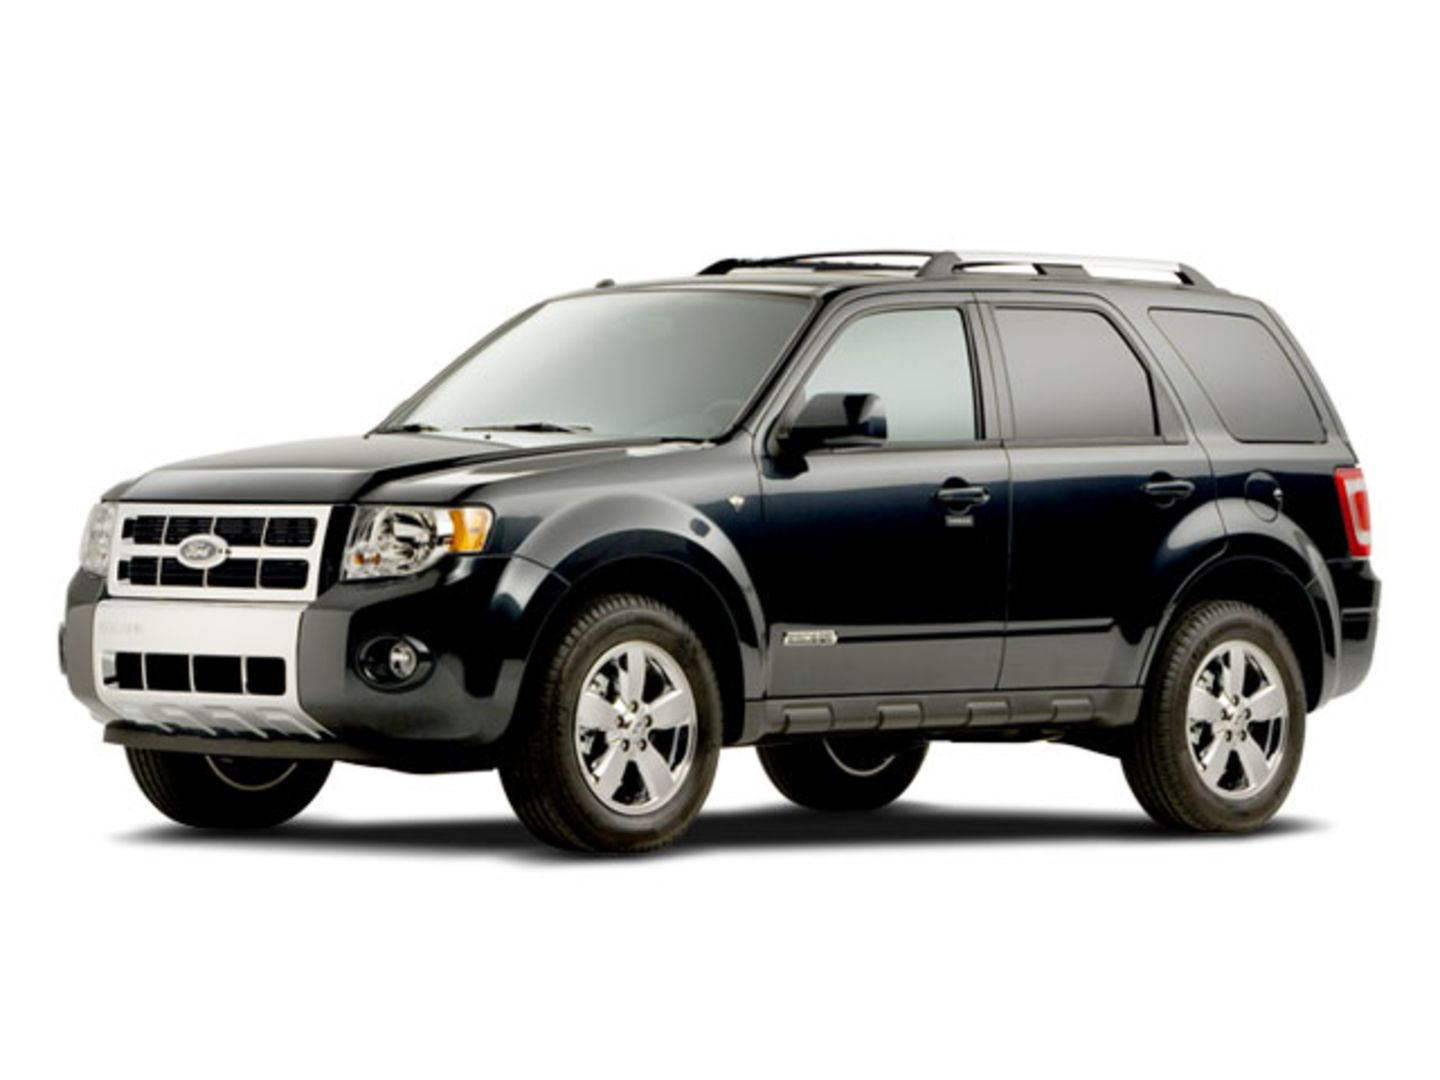 2008 Ford Escape XLT for sale in Red Deer, Alberta